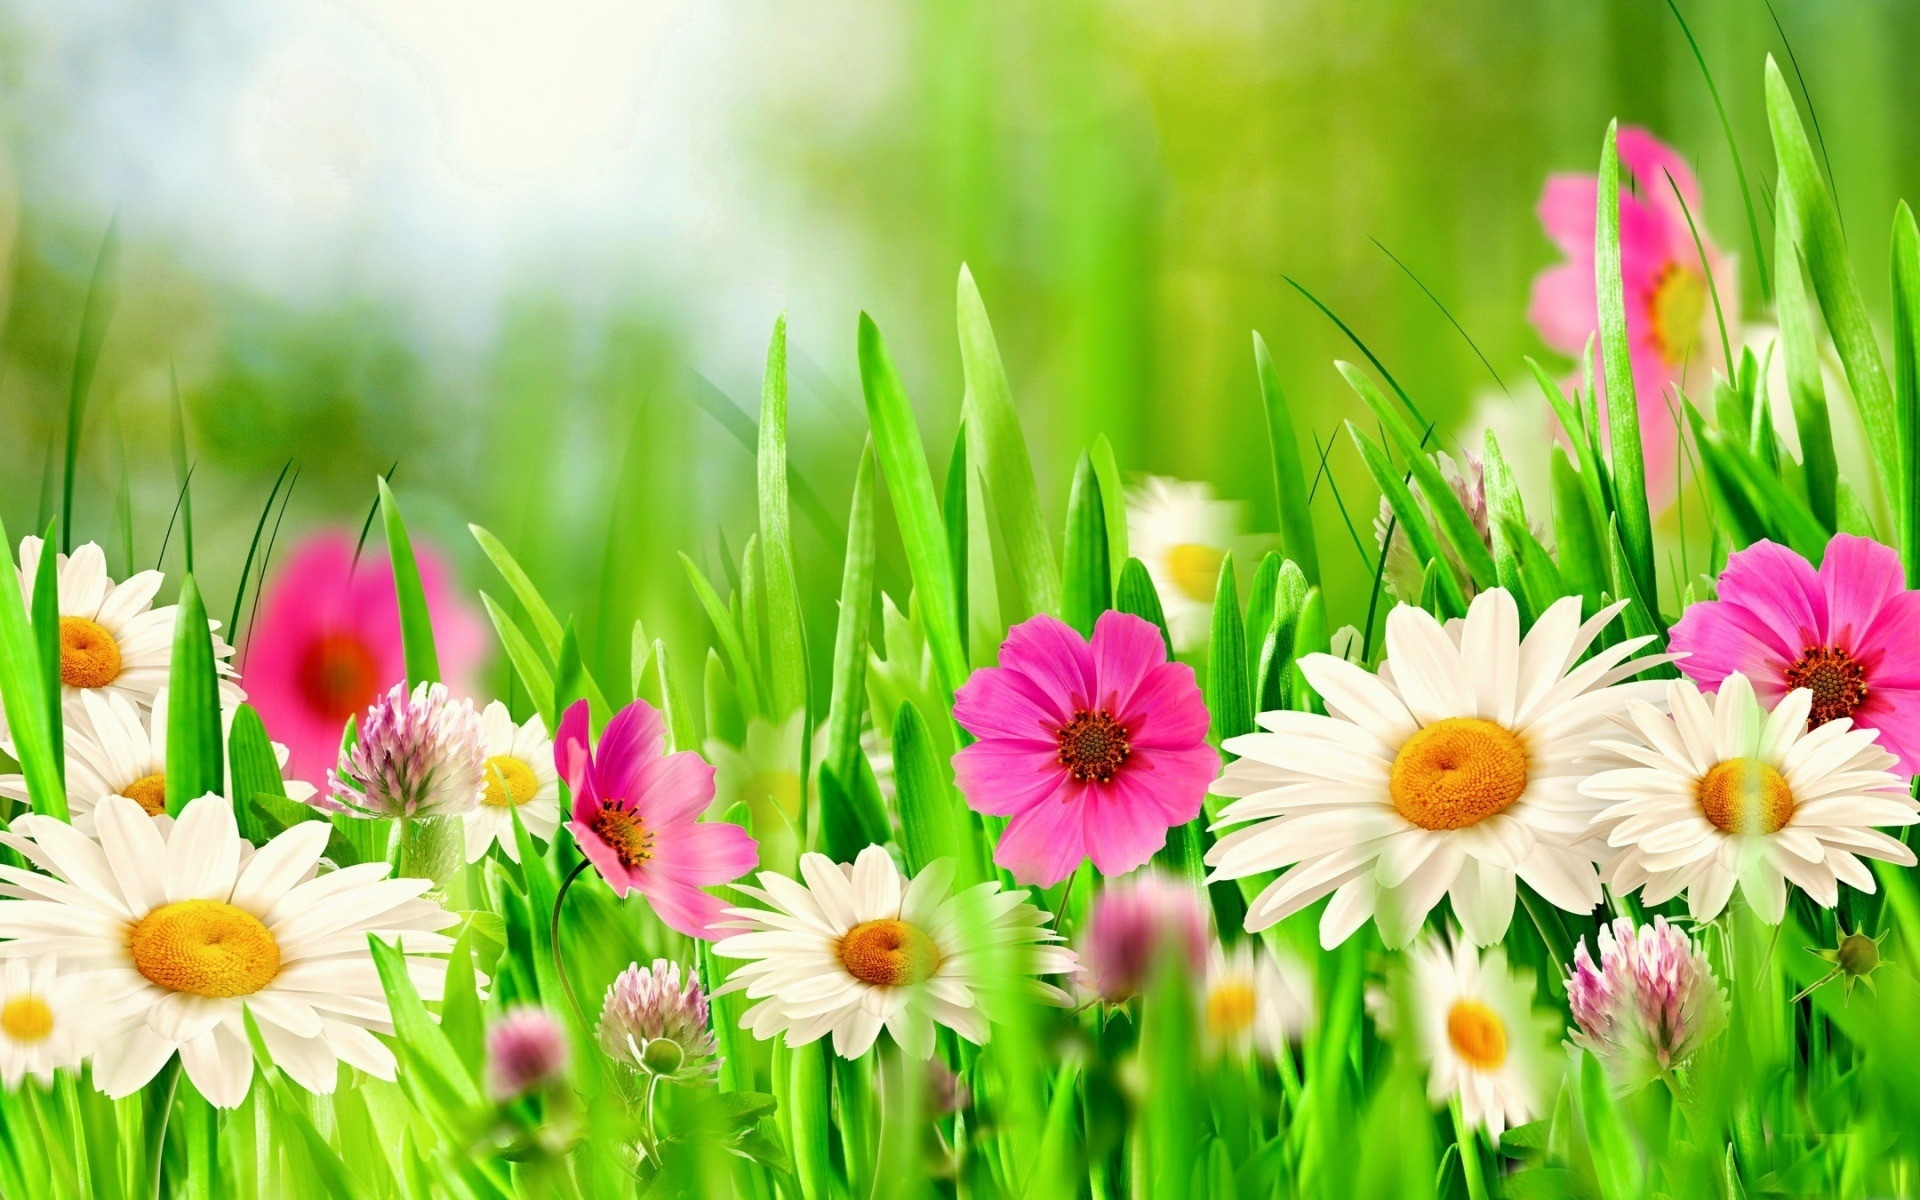 flowers: meadow flowers daisies grass spring flower wallpaper for